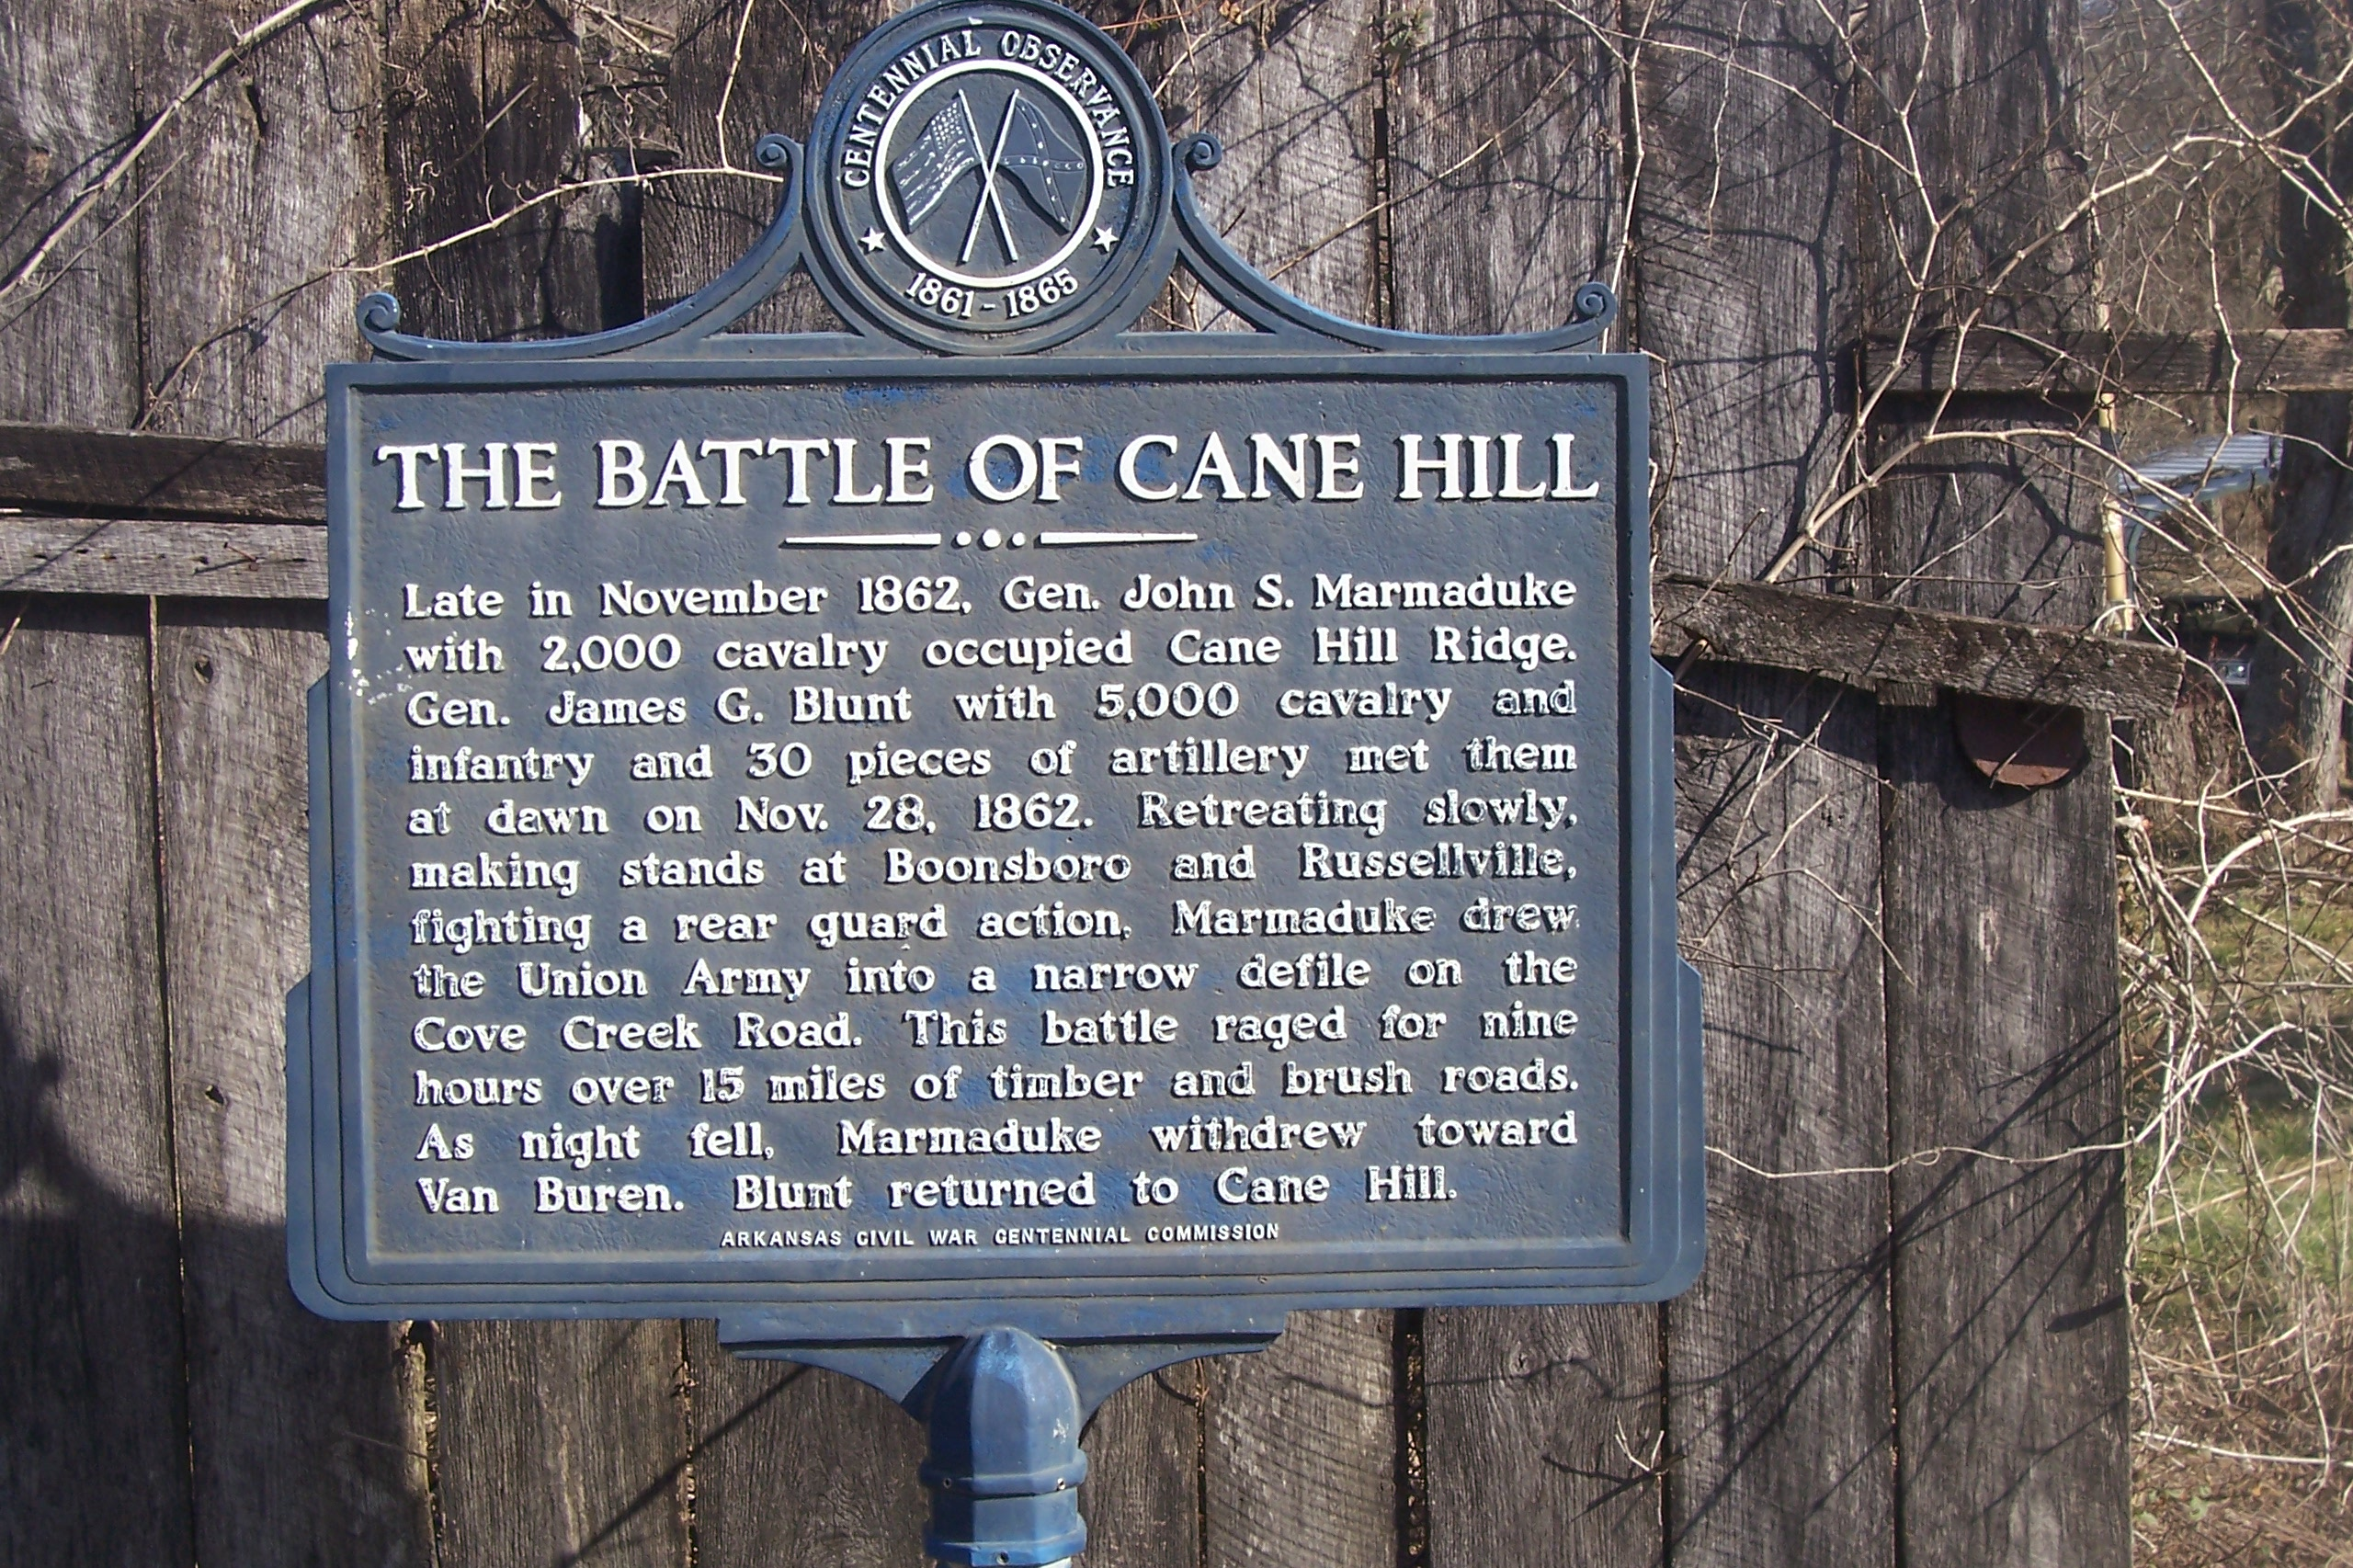 The Battle of Cane Hill took place on November 28, 1862. Although the Confederate army obtained a tactical victory it was the Union who won the battle.